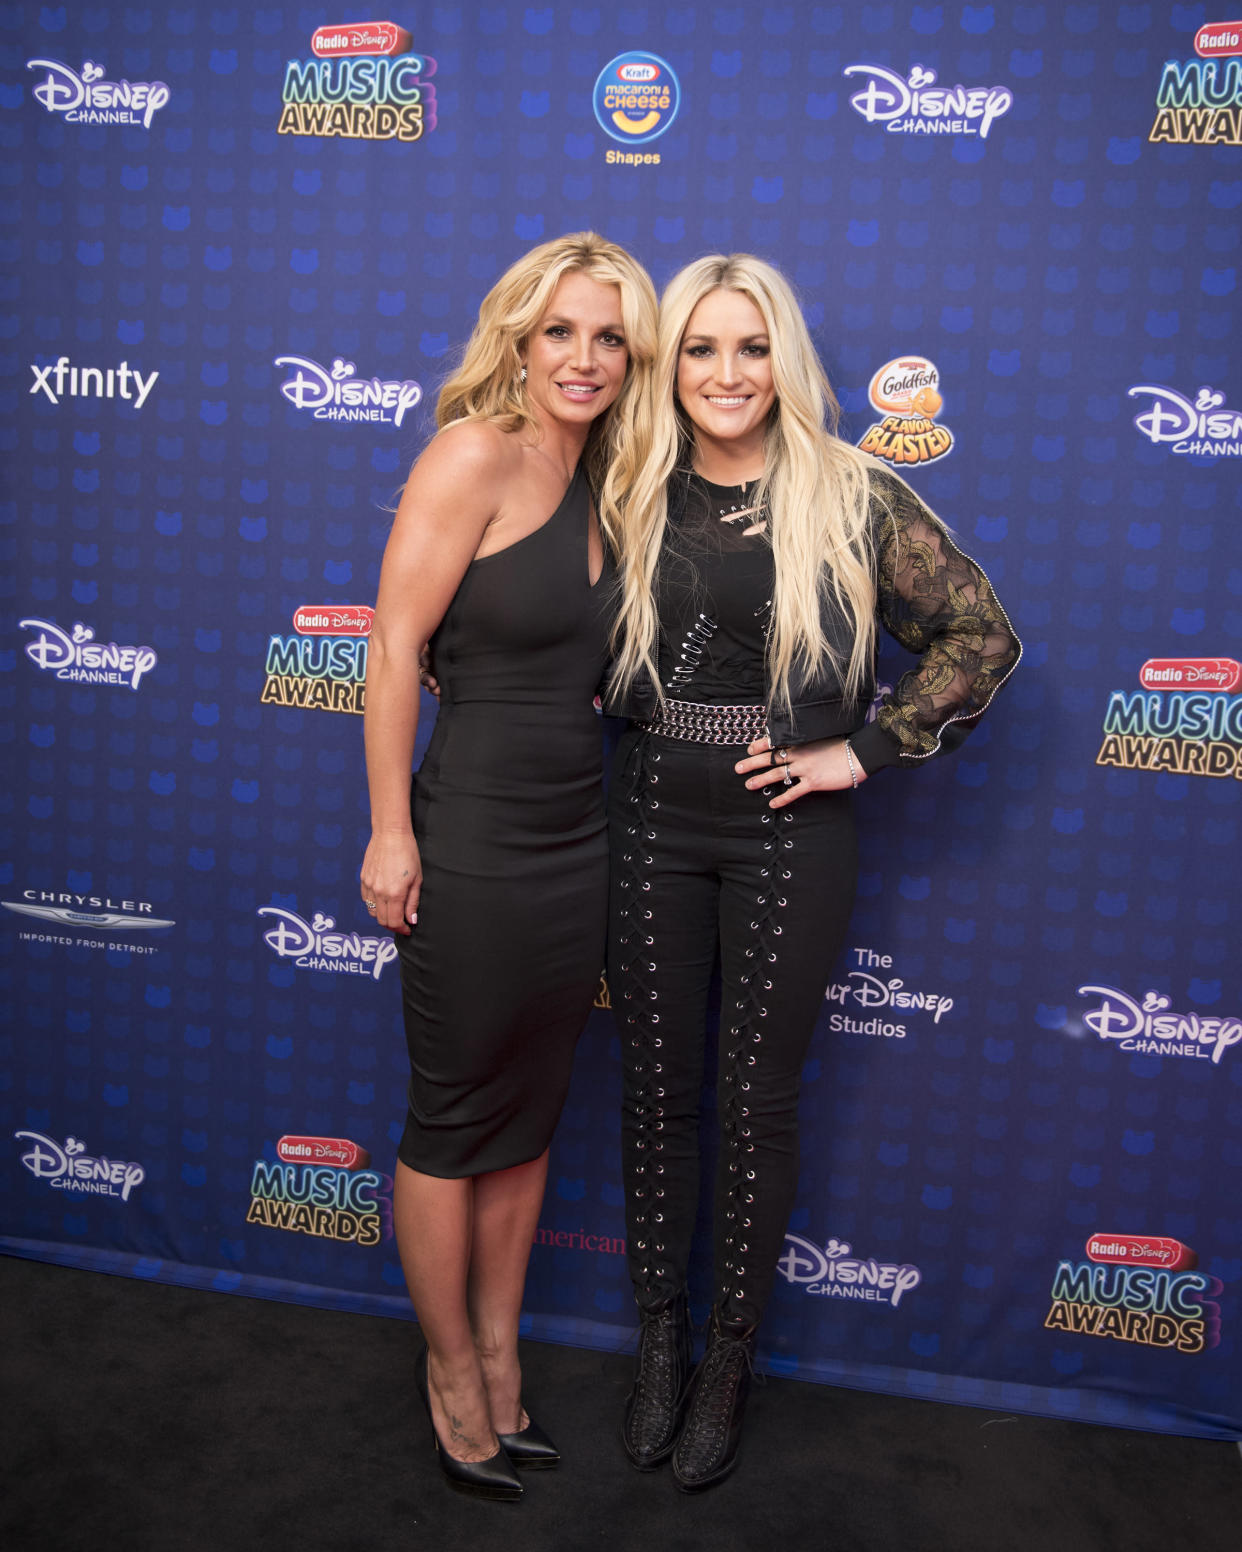 DISNEY CHANNEL PRESENTS THE 2017 RADIO DISNEY MUSIC AWARDS - Entertainment's brightest young stars turned out for the 2017 Radio Disney Music Awards (RDMA), music's biggest event for families, at Microsoft Theater in Los Angeles on Saturday, April 29.